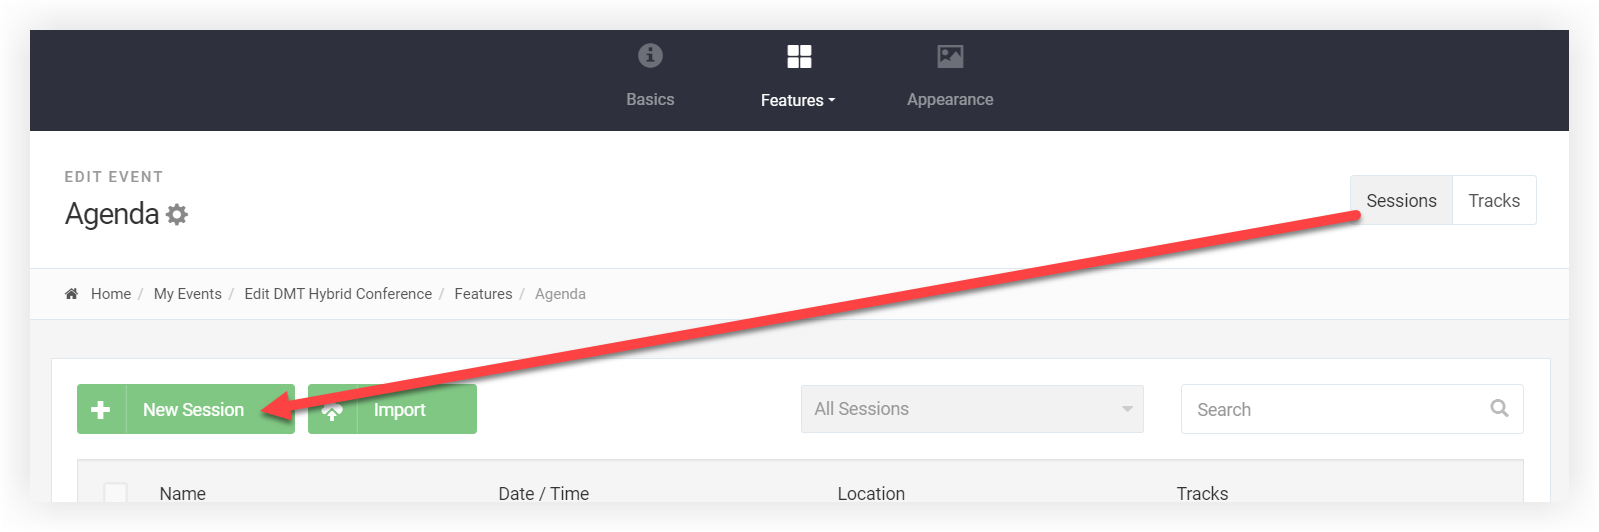 Screenshot of the Agenda page. The New Session button is indicated.